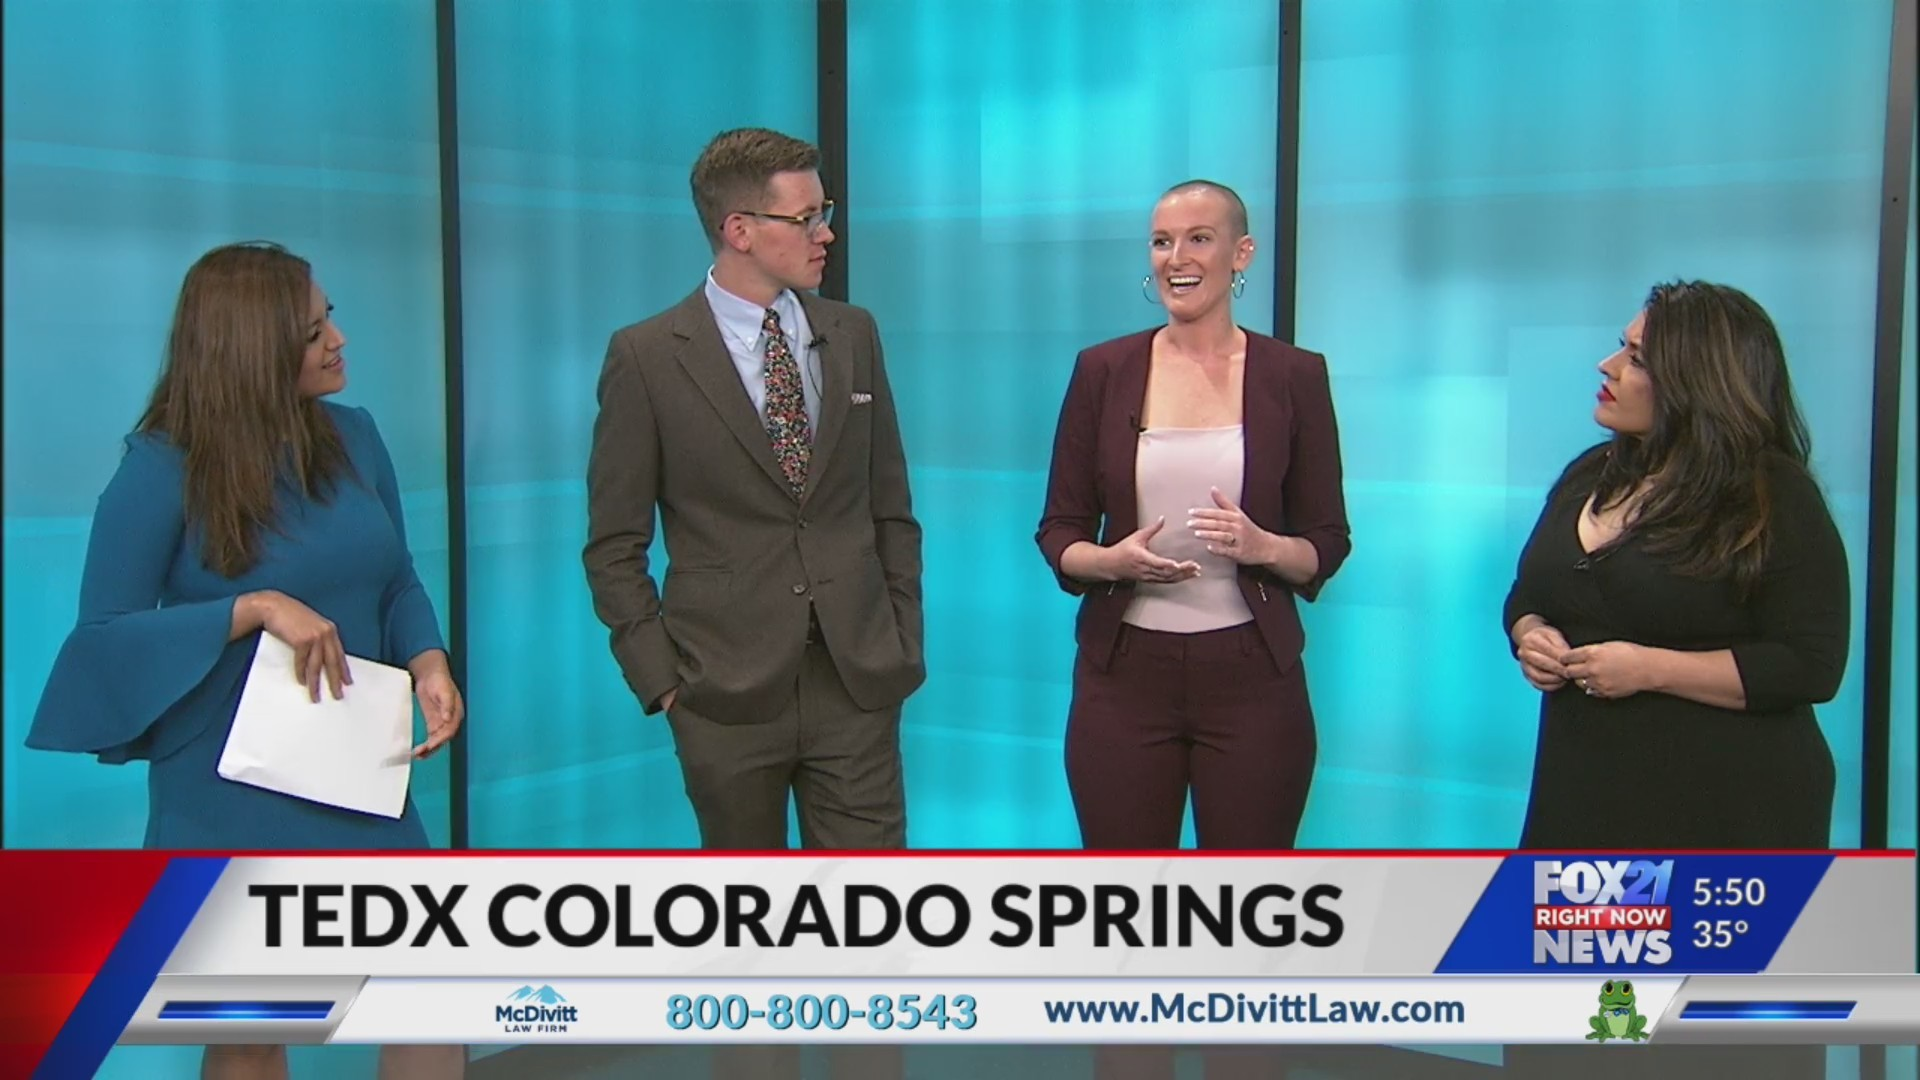 TEDxColoradoSprings on FOX21 Morning News Part 1